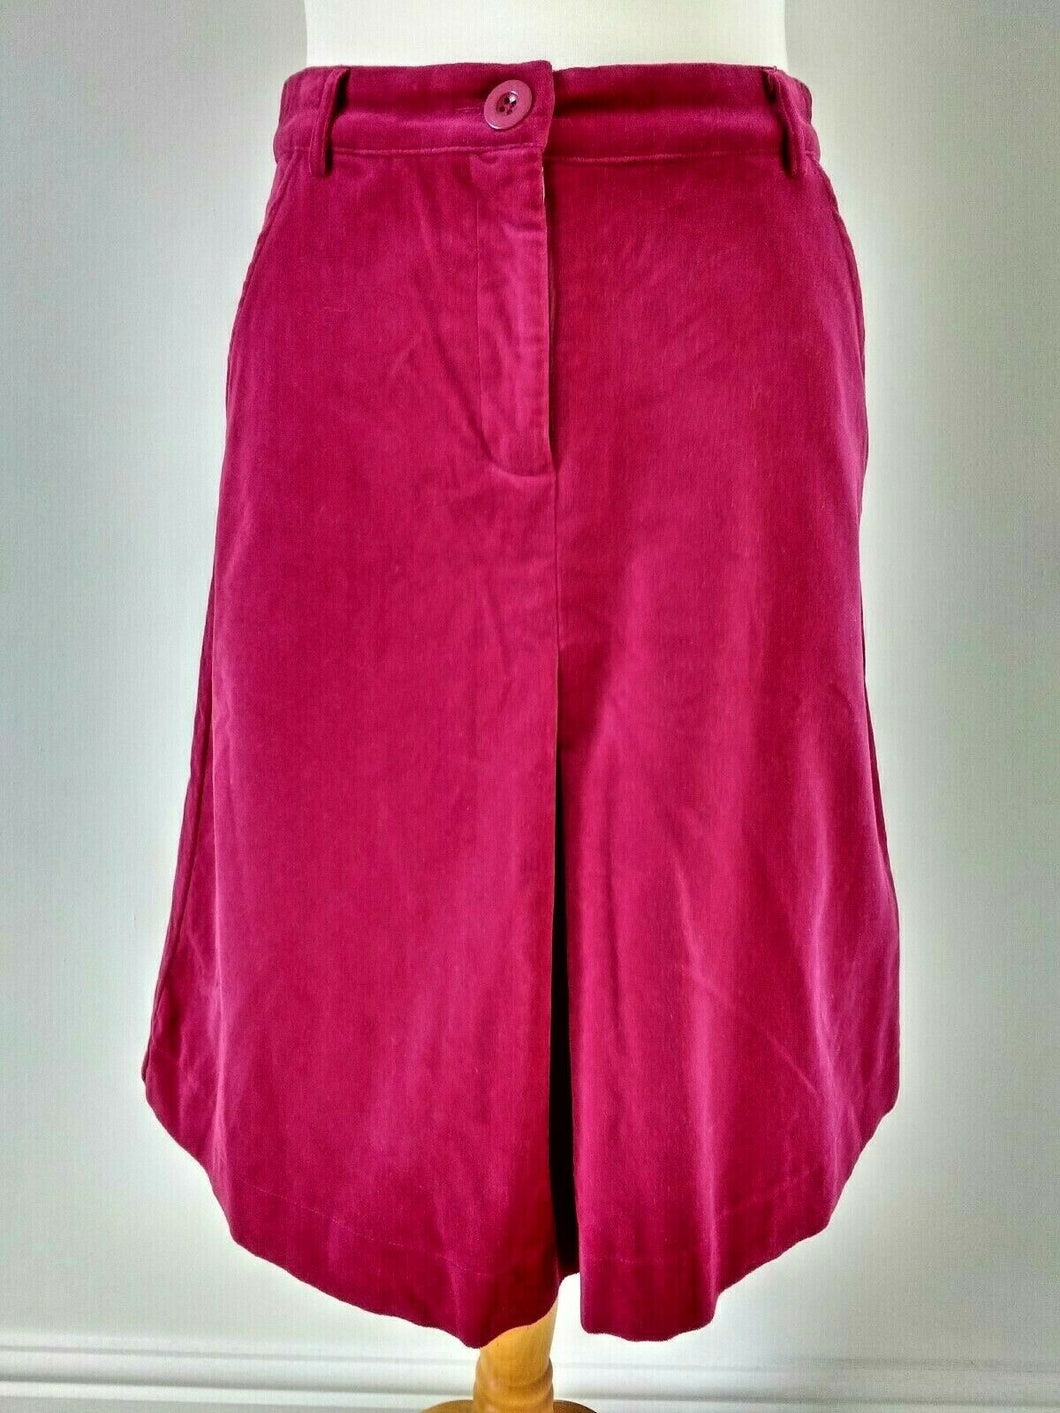 Thought Velveteen Skirt Size 8